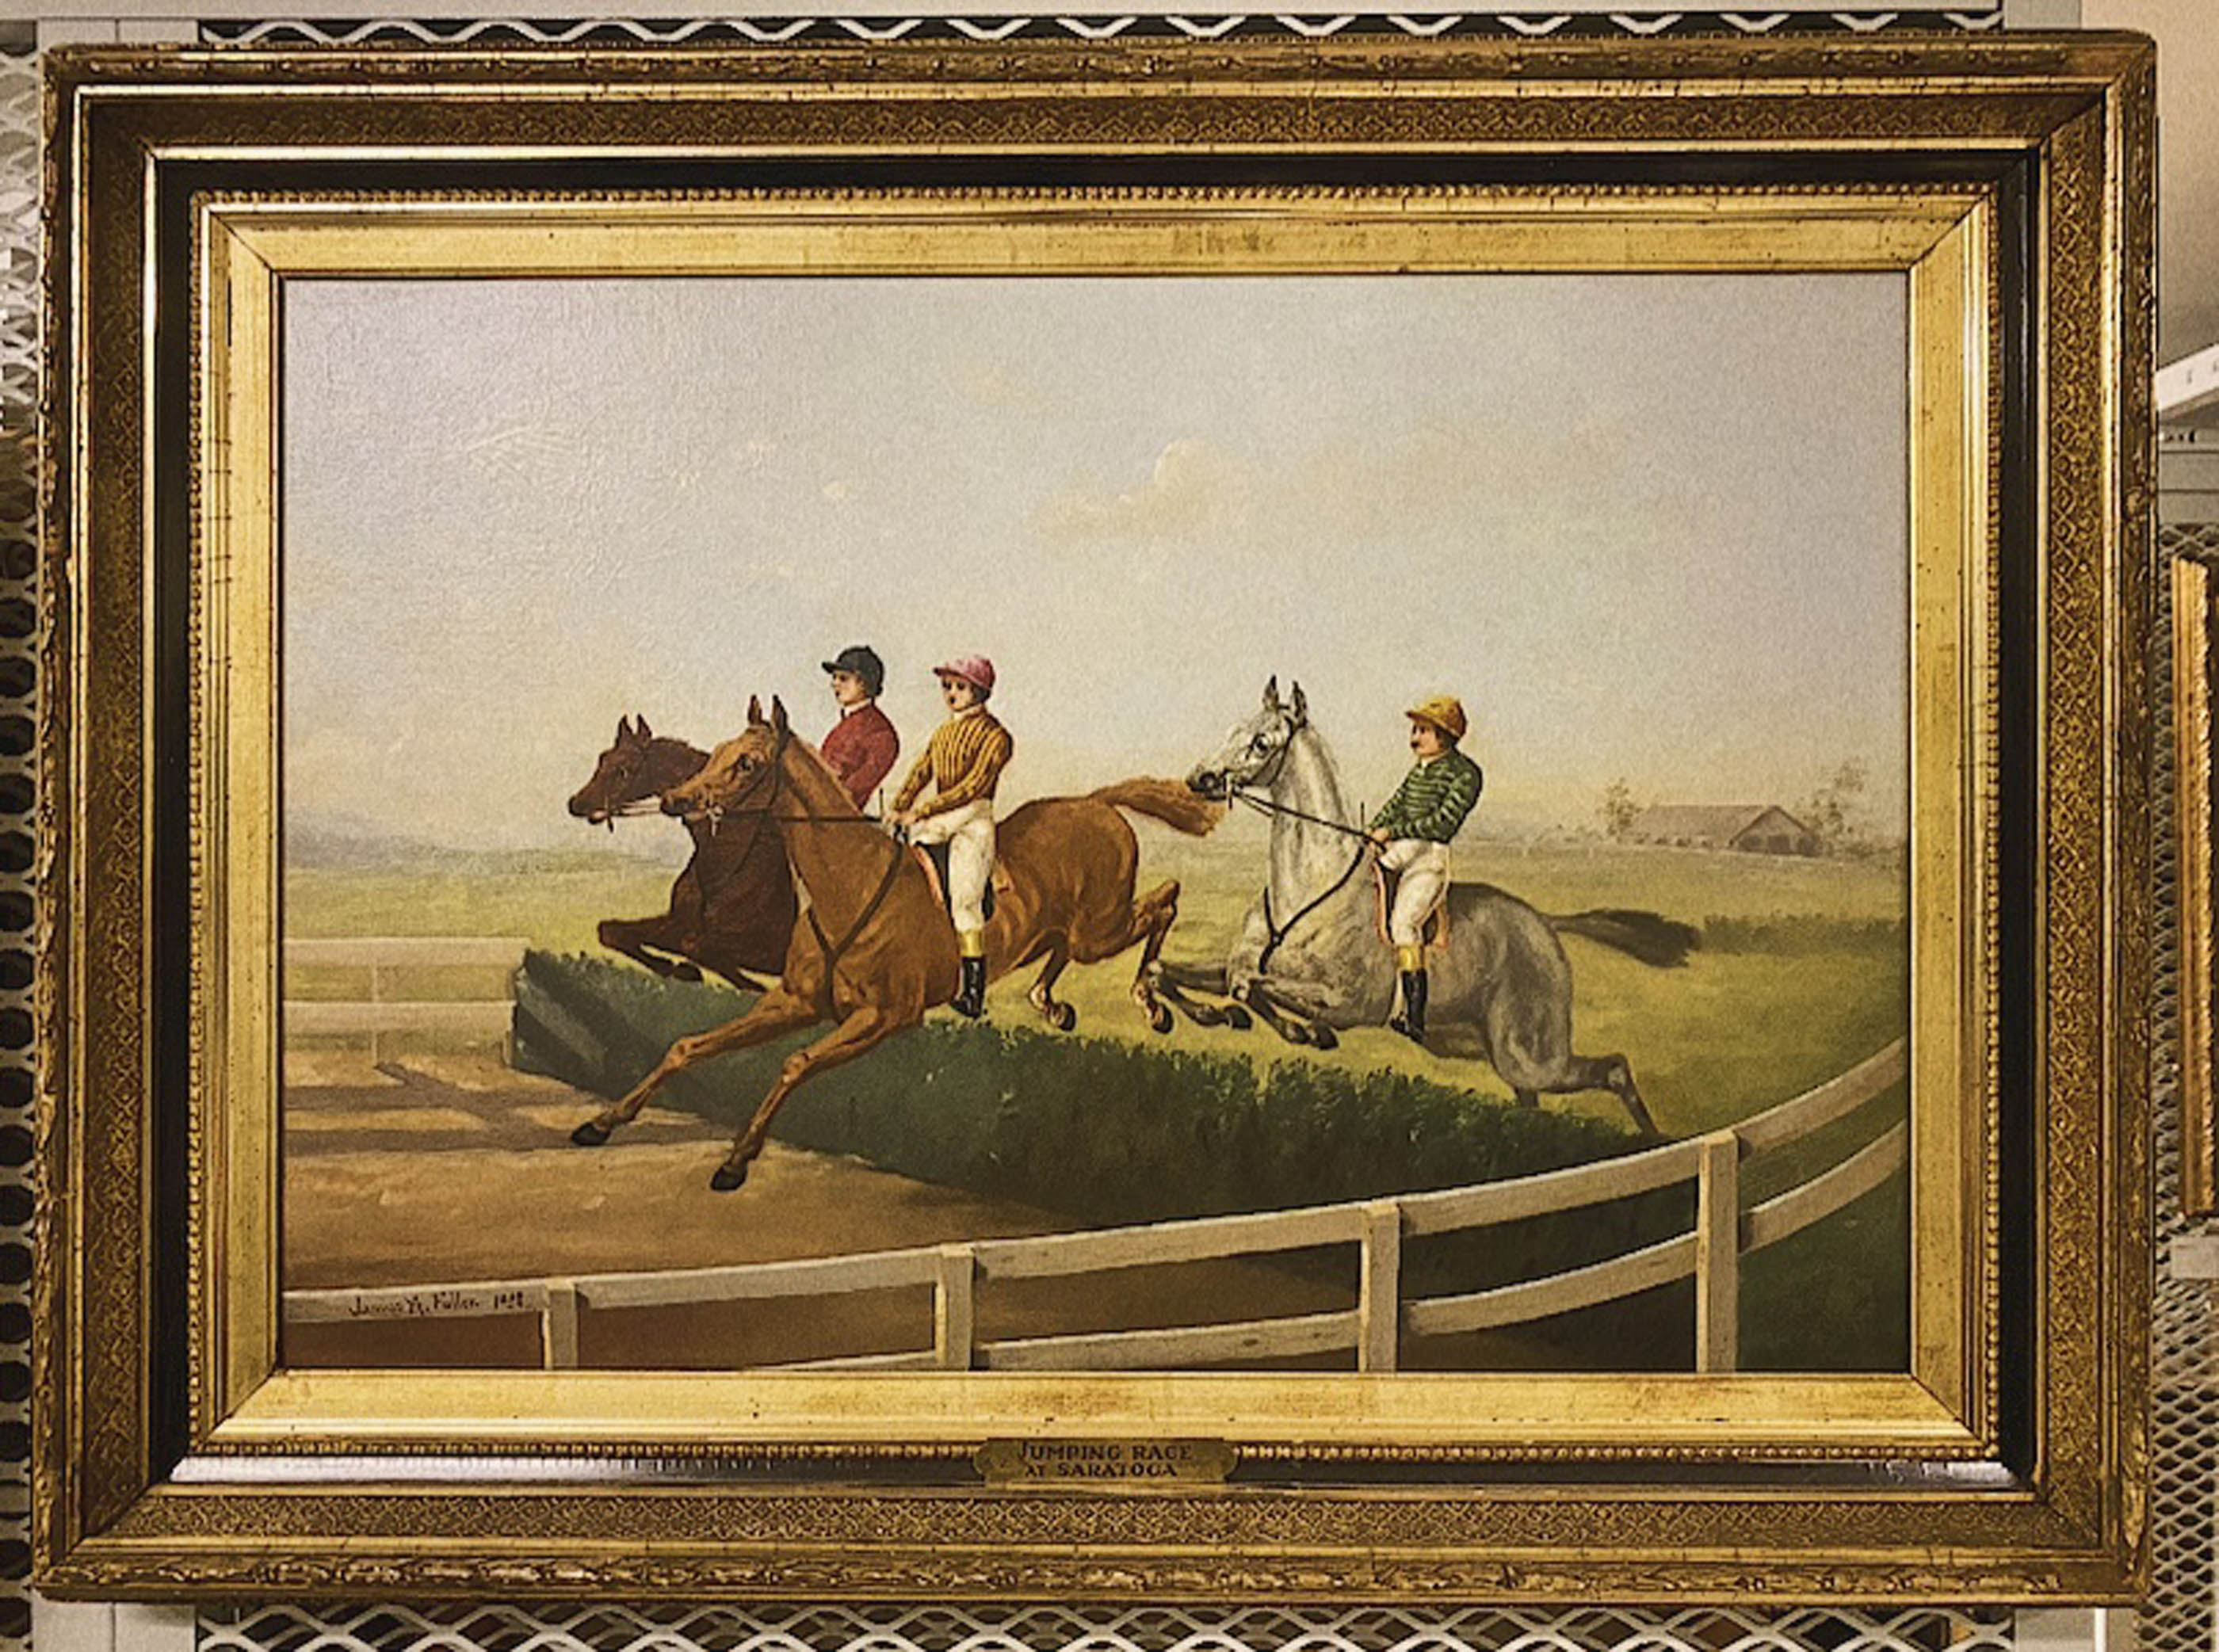 1955.50: Jumping Race at Saratoga by Junius A. Fuller, Oil on canvas, 1882, Gift: Jerome Sayles Hess